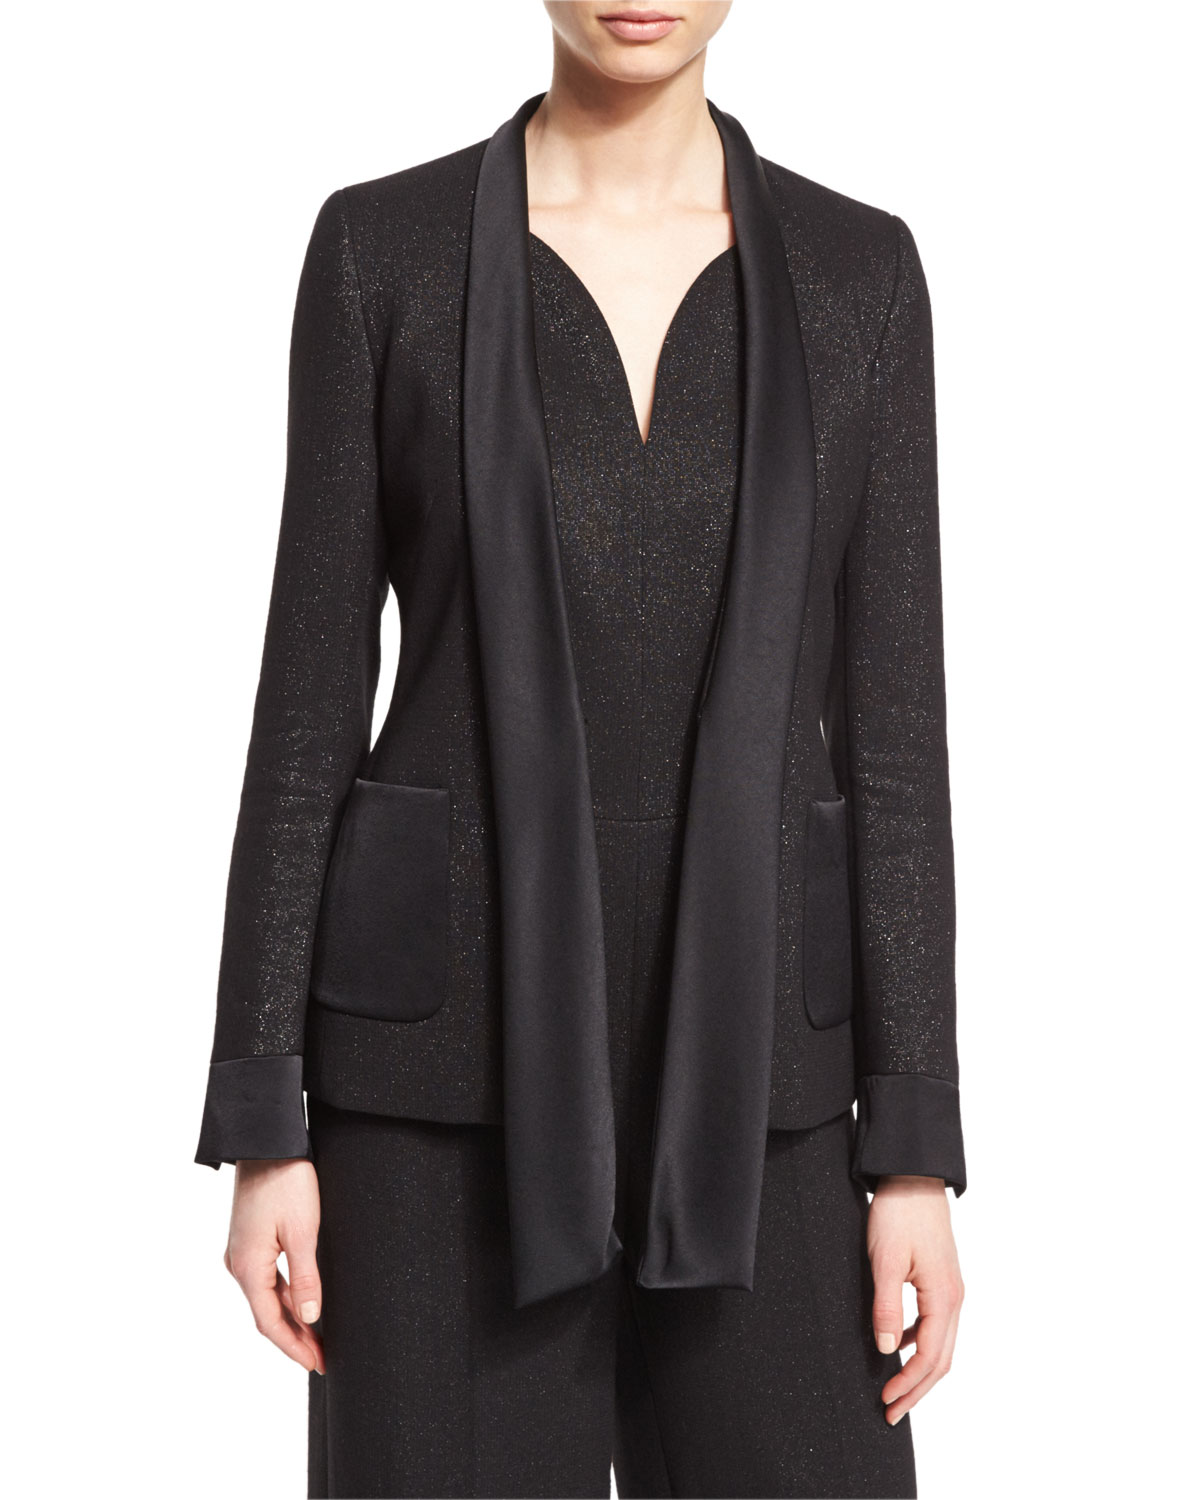 Shimmery Satin-Tie Jacket, Black